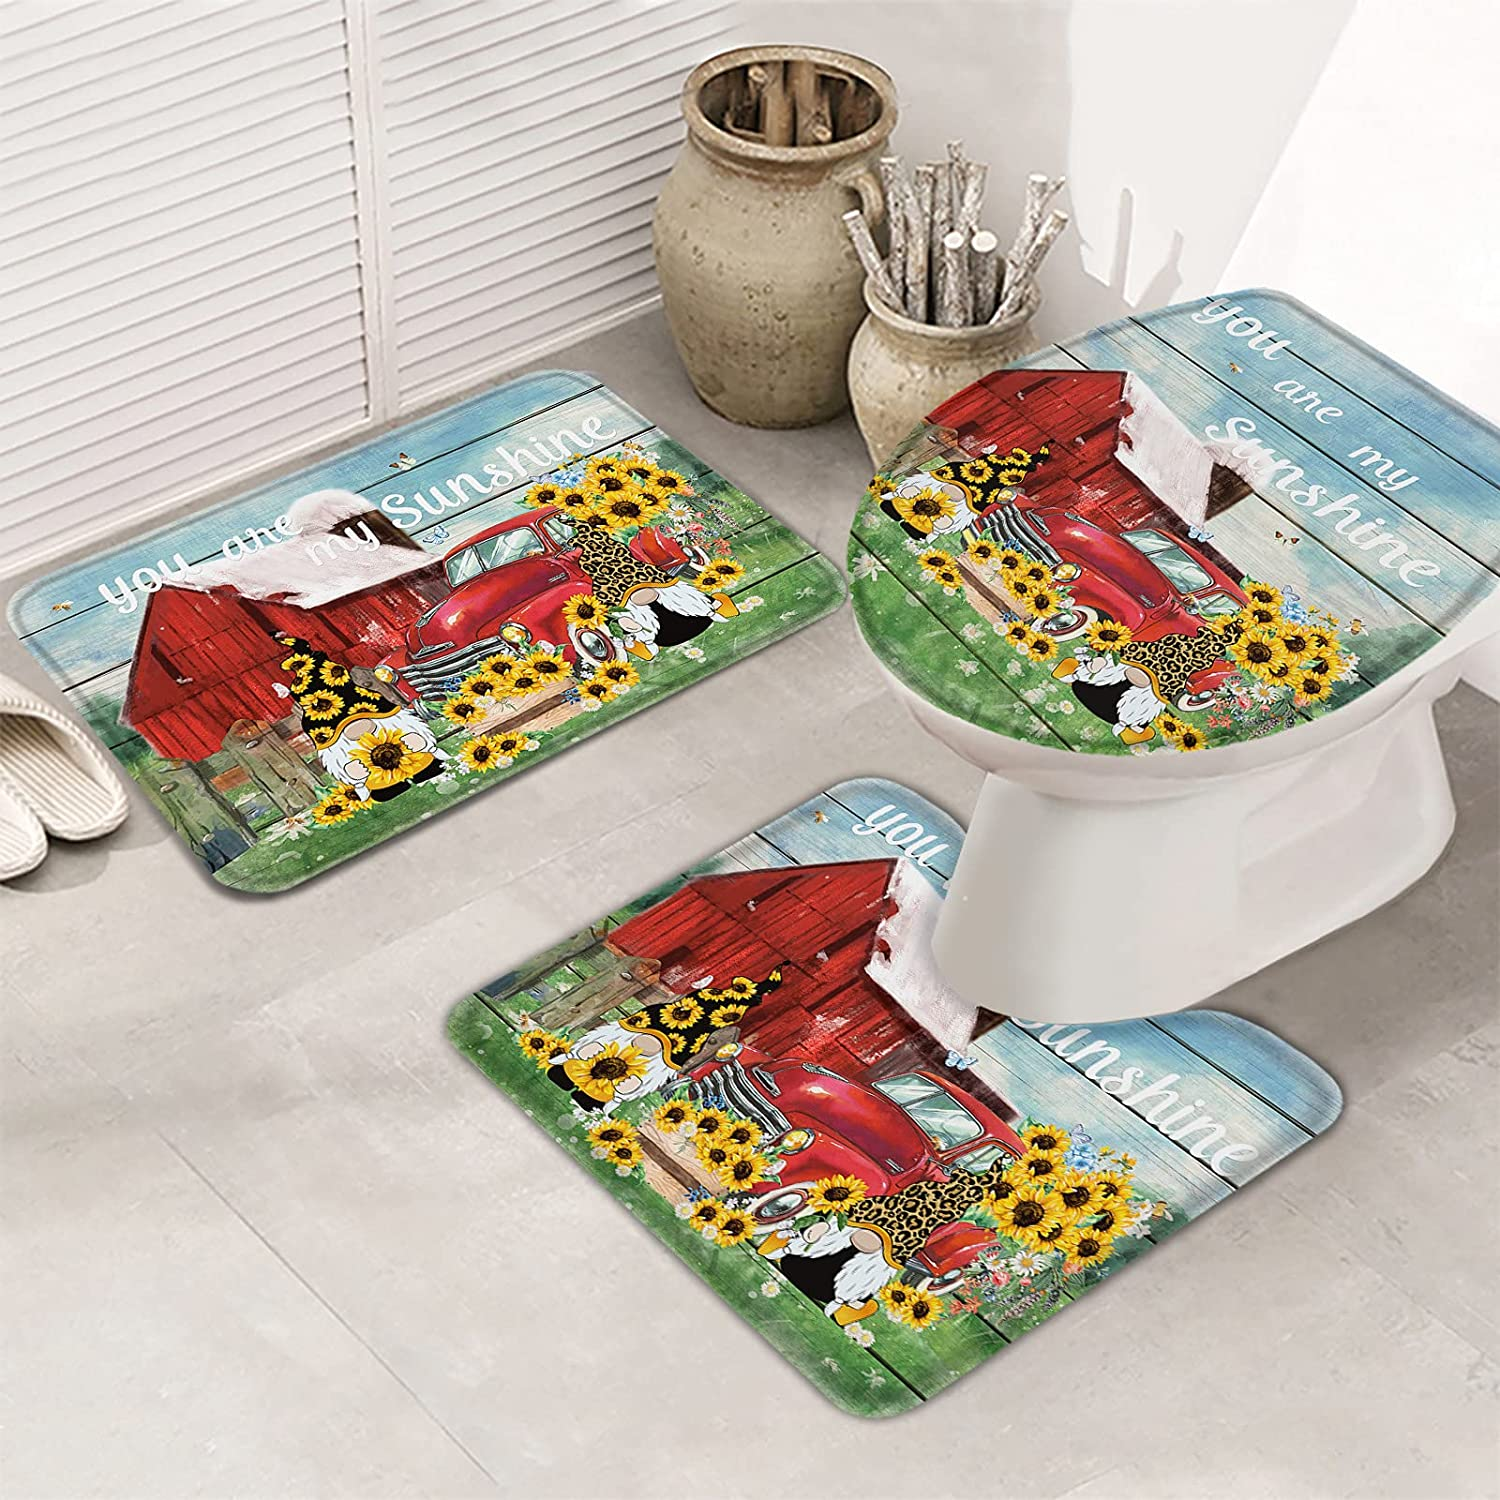 Queenker 3 Pieces Bath Rug Max 51% OFF Set T Gnome Toilet Ranking TOP2 Cover Seat Leopard